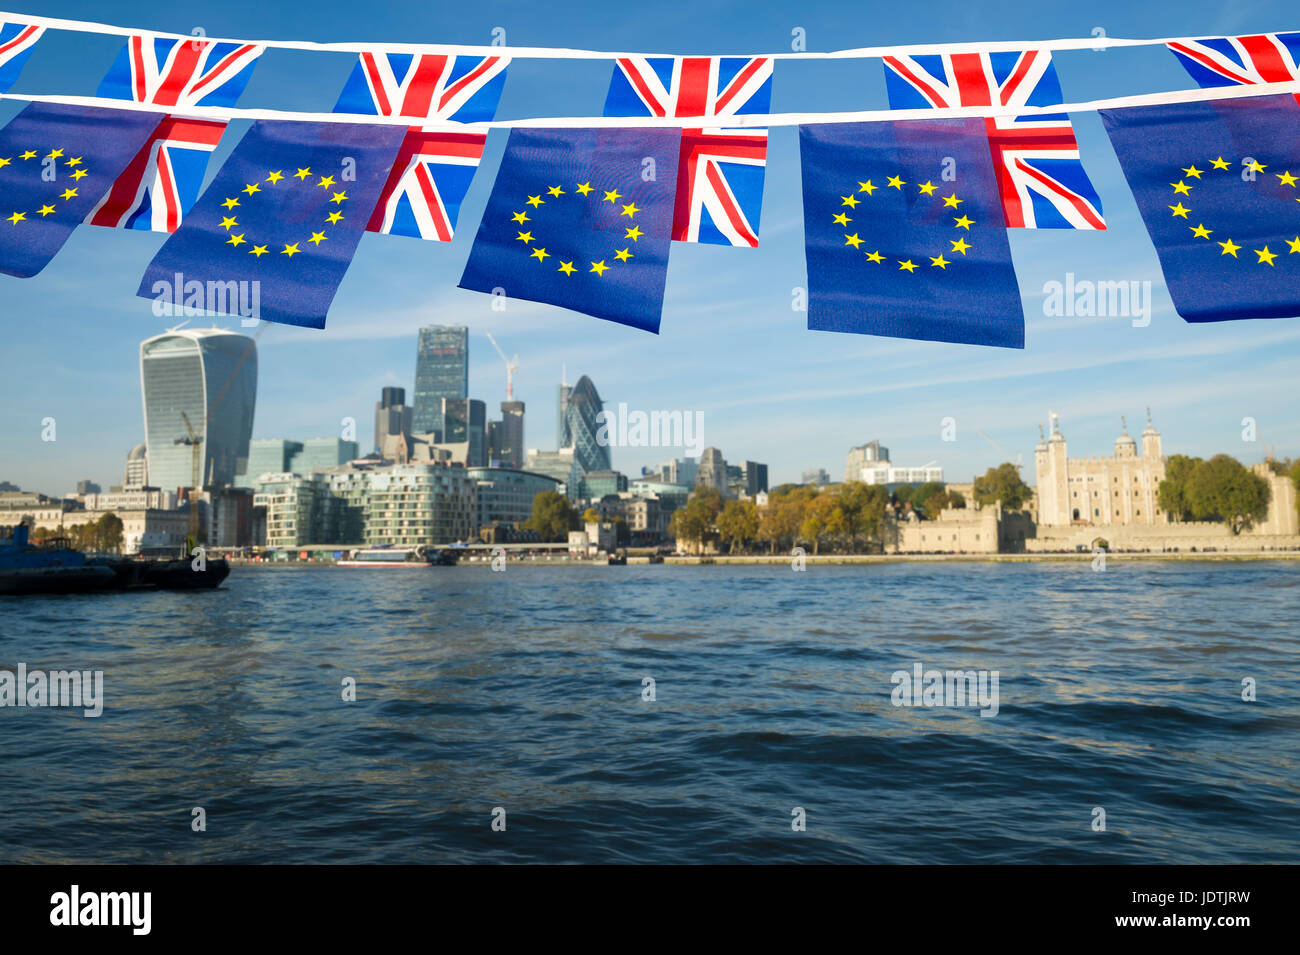 EU and UK bunting flags flying in front of the City of London, England skyline over the River Thames - Stock Image